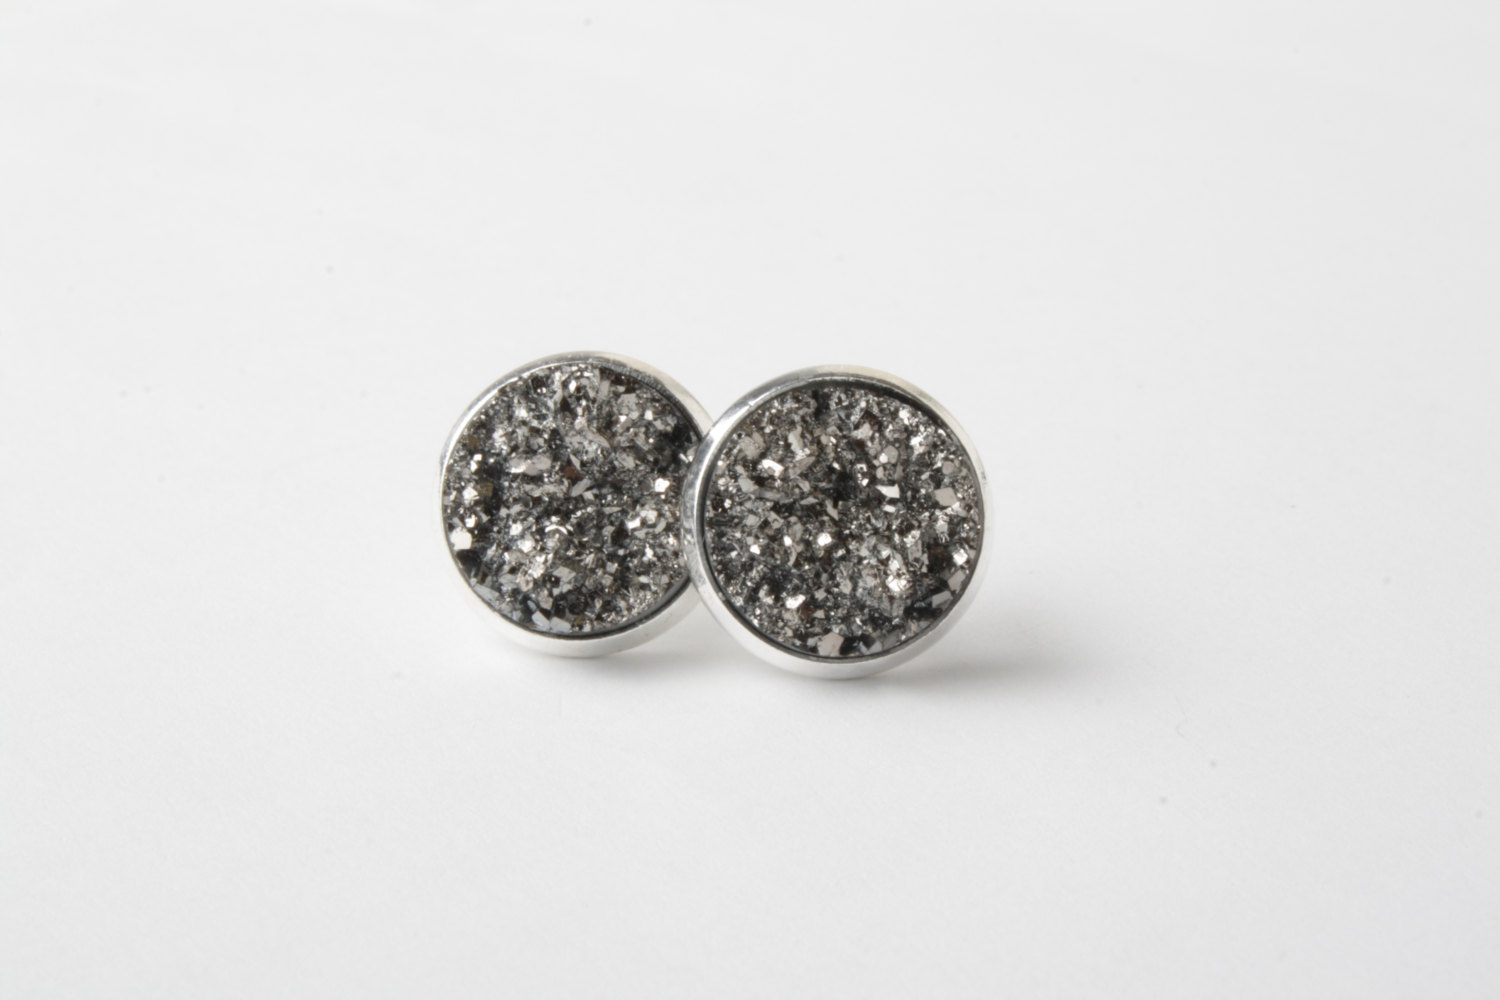 things various sparkly ear self accessories improve range to stud vitals products and jewellery esteem pretty studs different clothing earrings round colours handmade simple classic